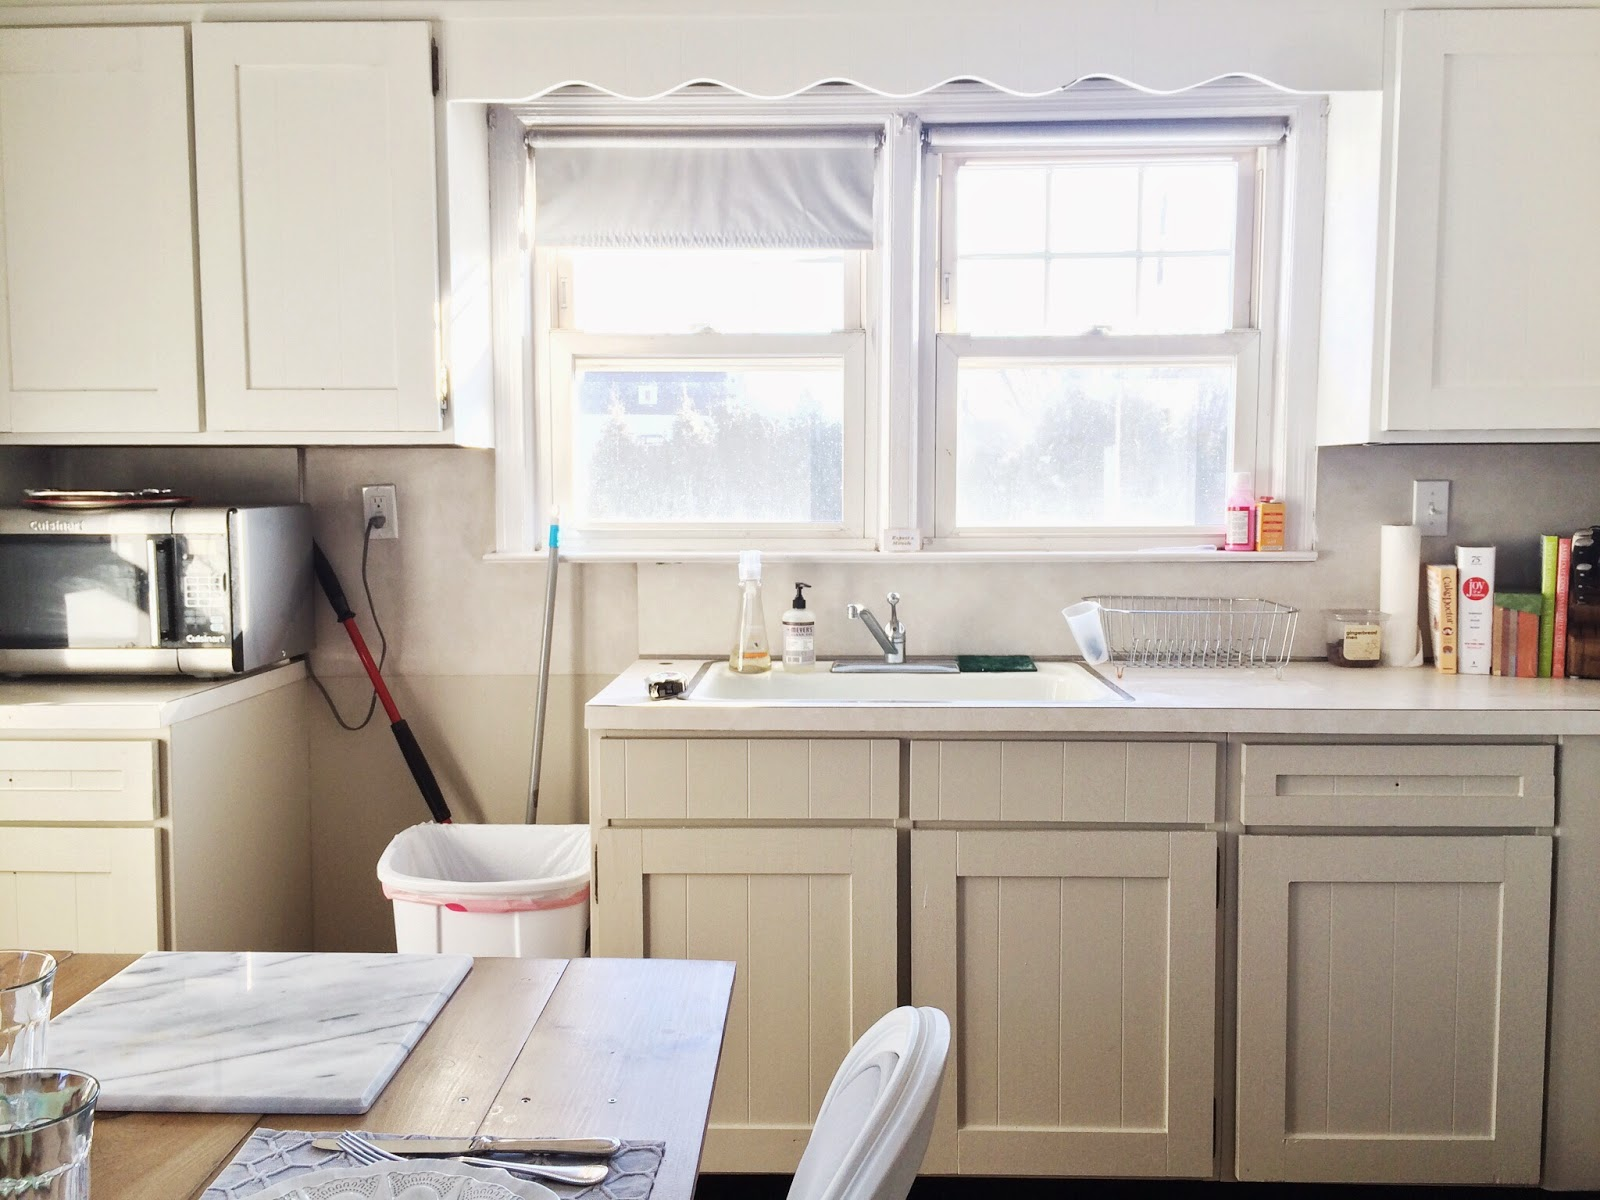 Adding Molding To Old Kitchen Cabinet Doors Savae Org